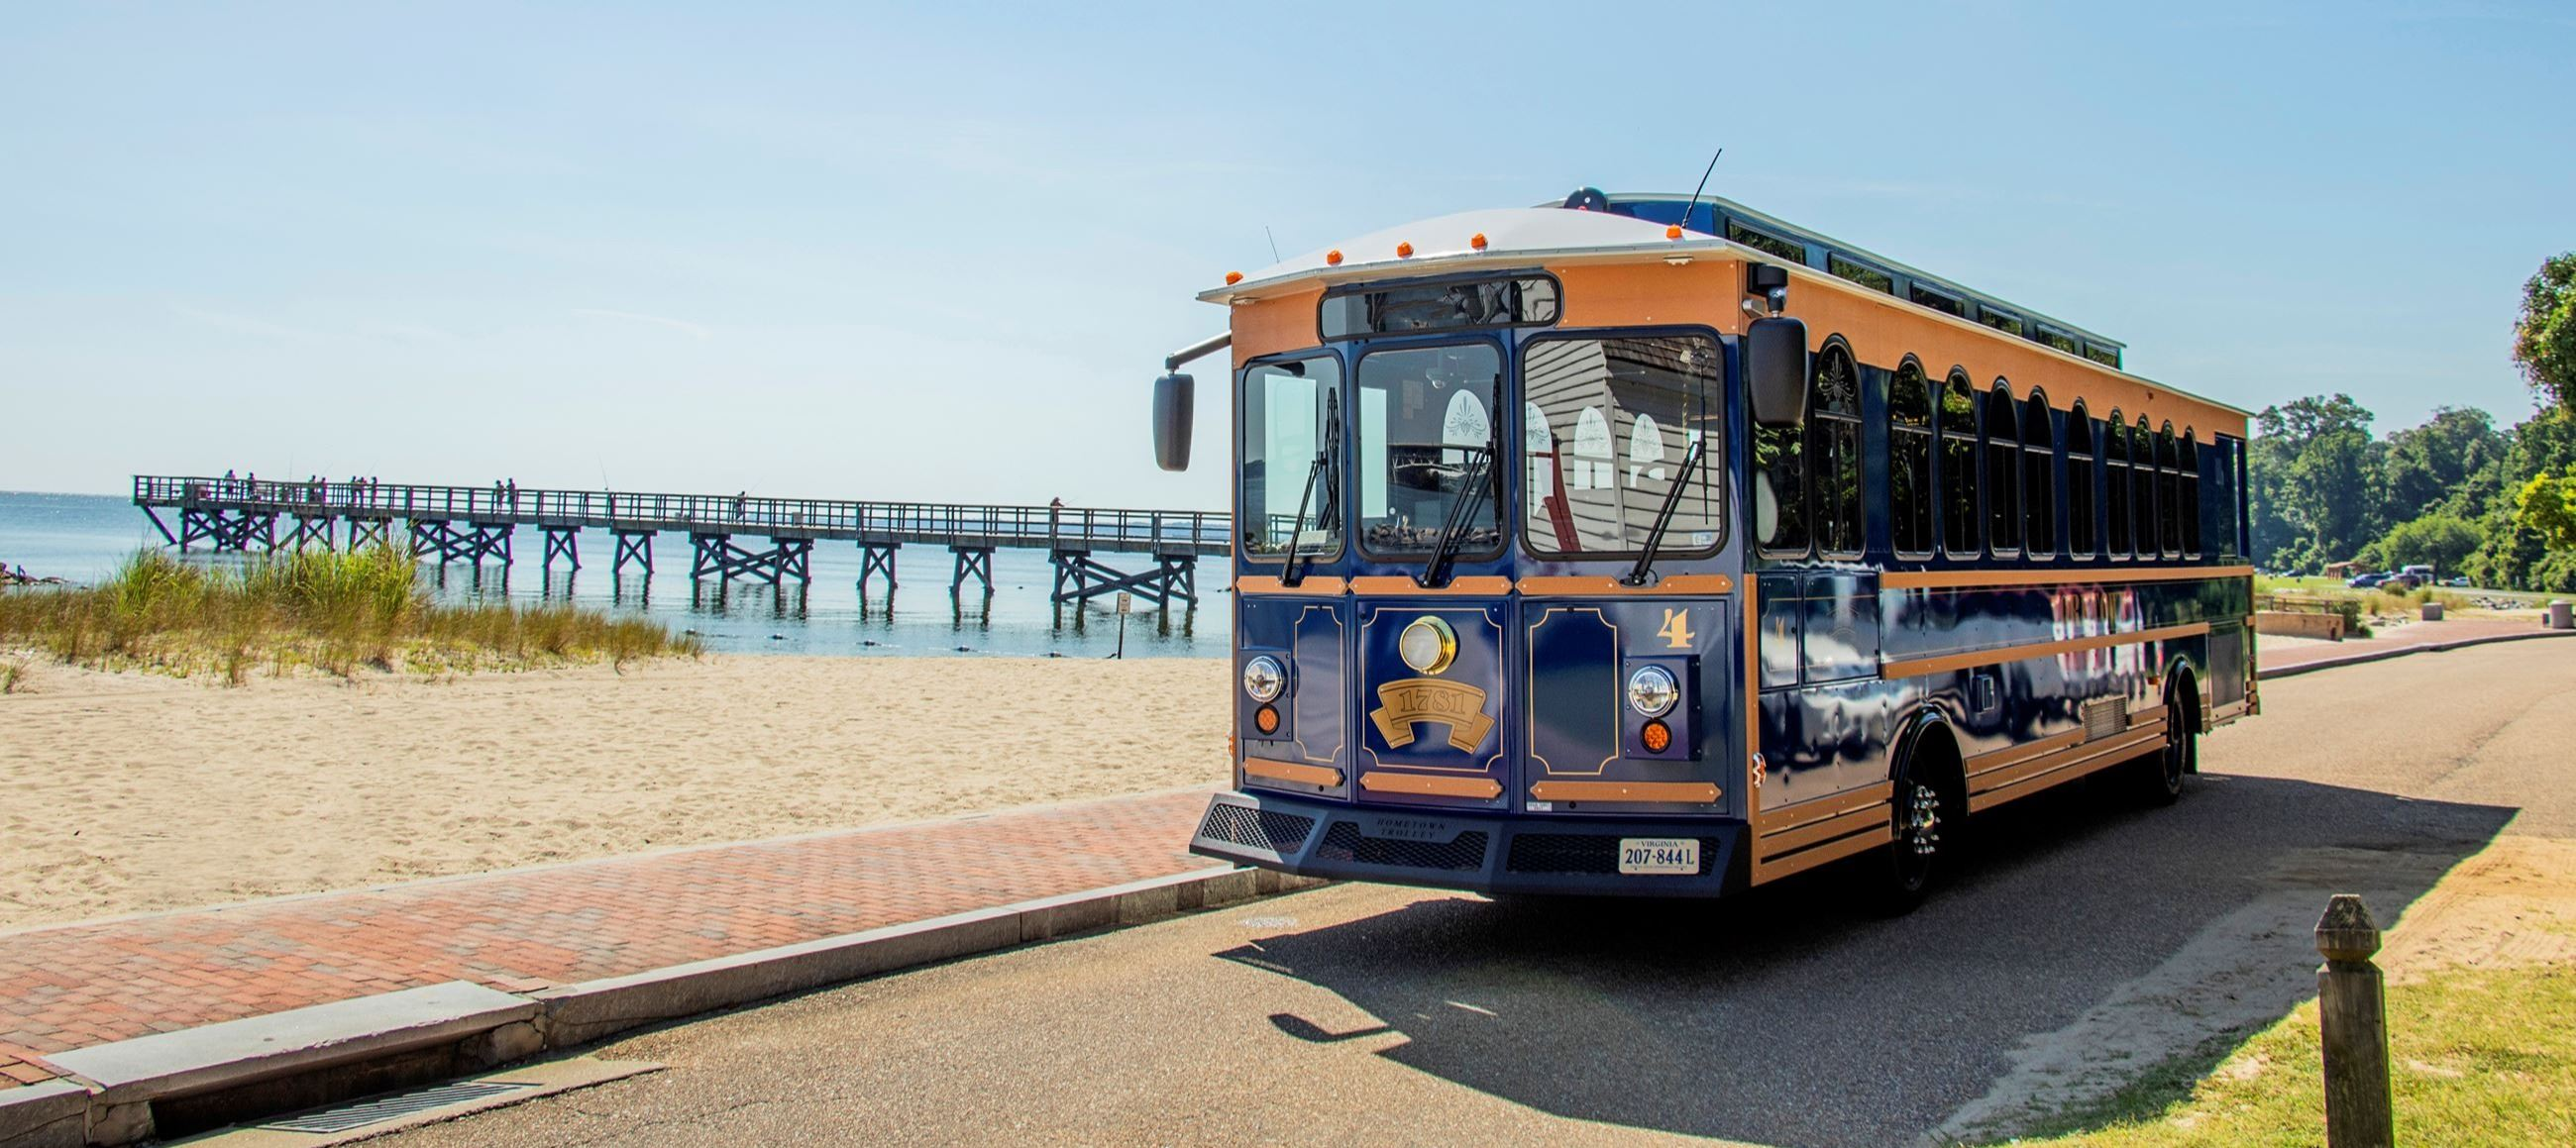 Trolley in front of Fishing Pier